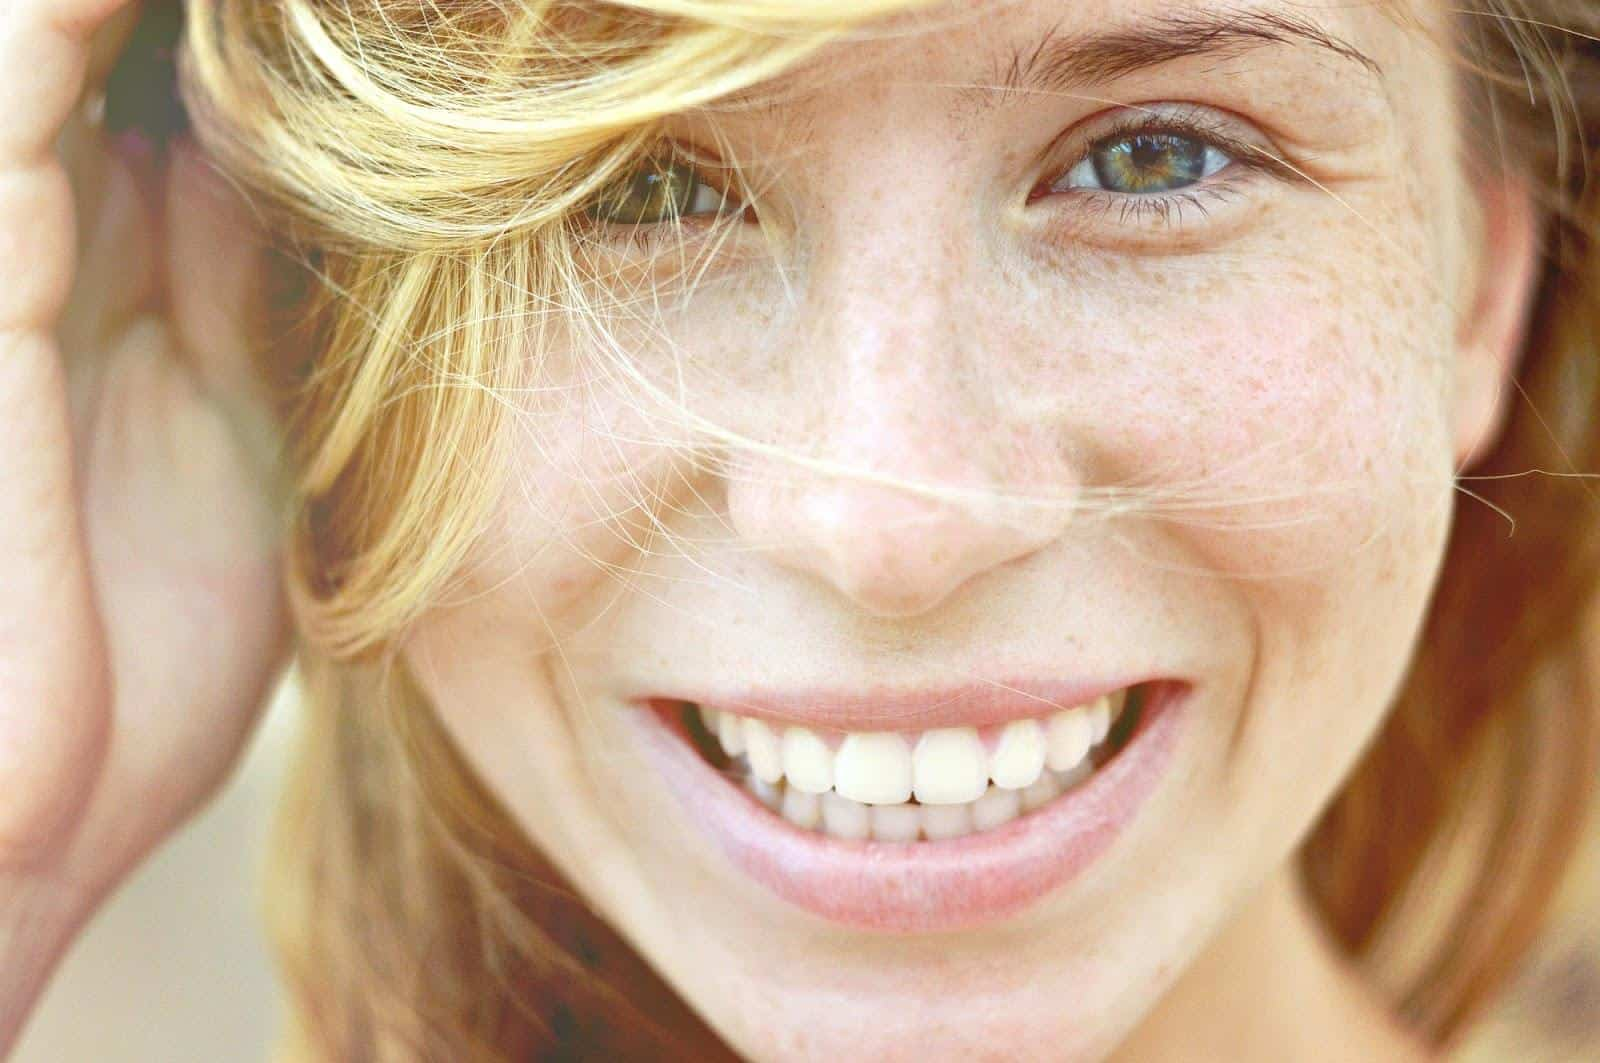 Close-up of a woman's smiling face.